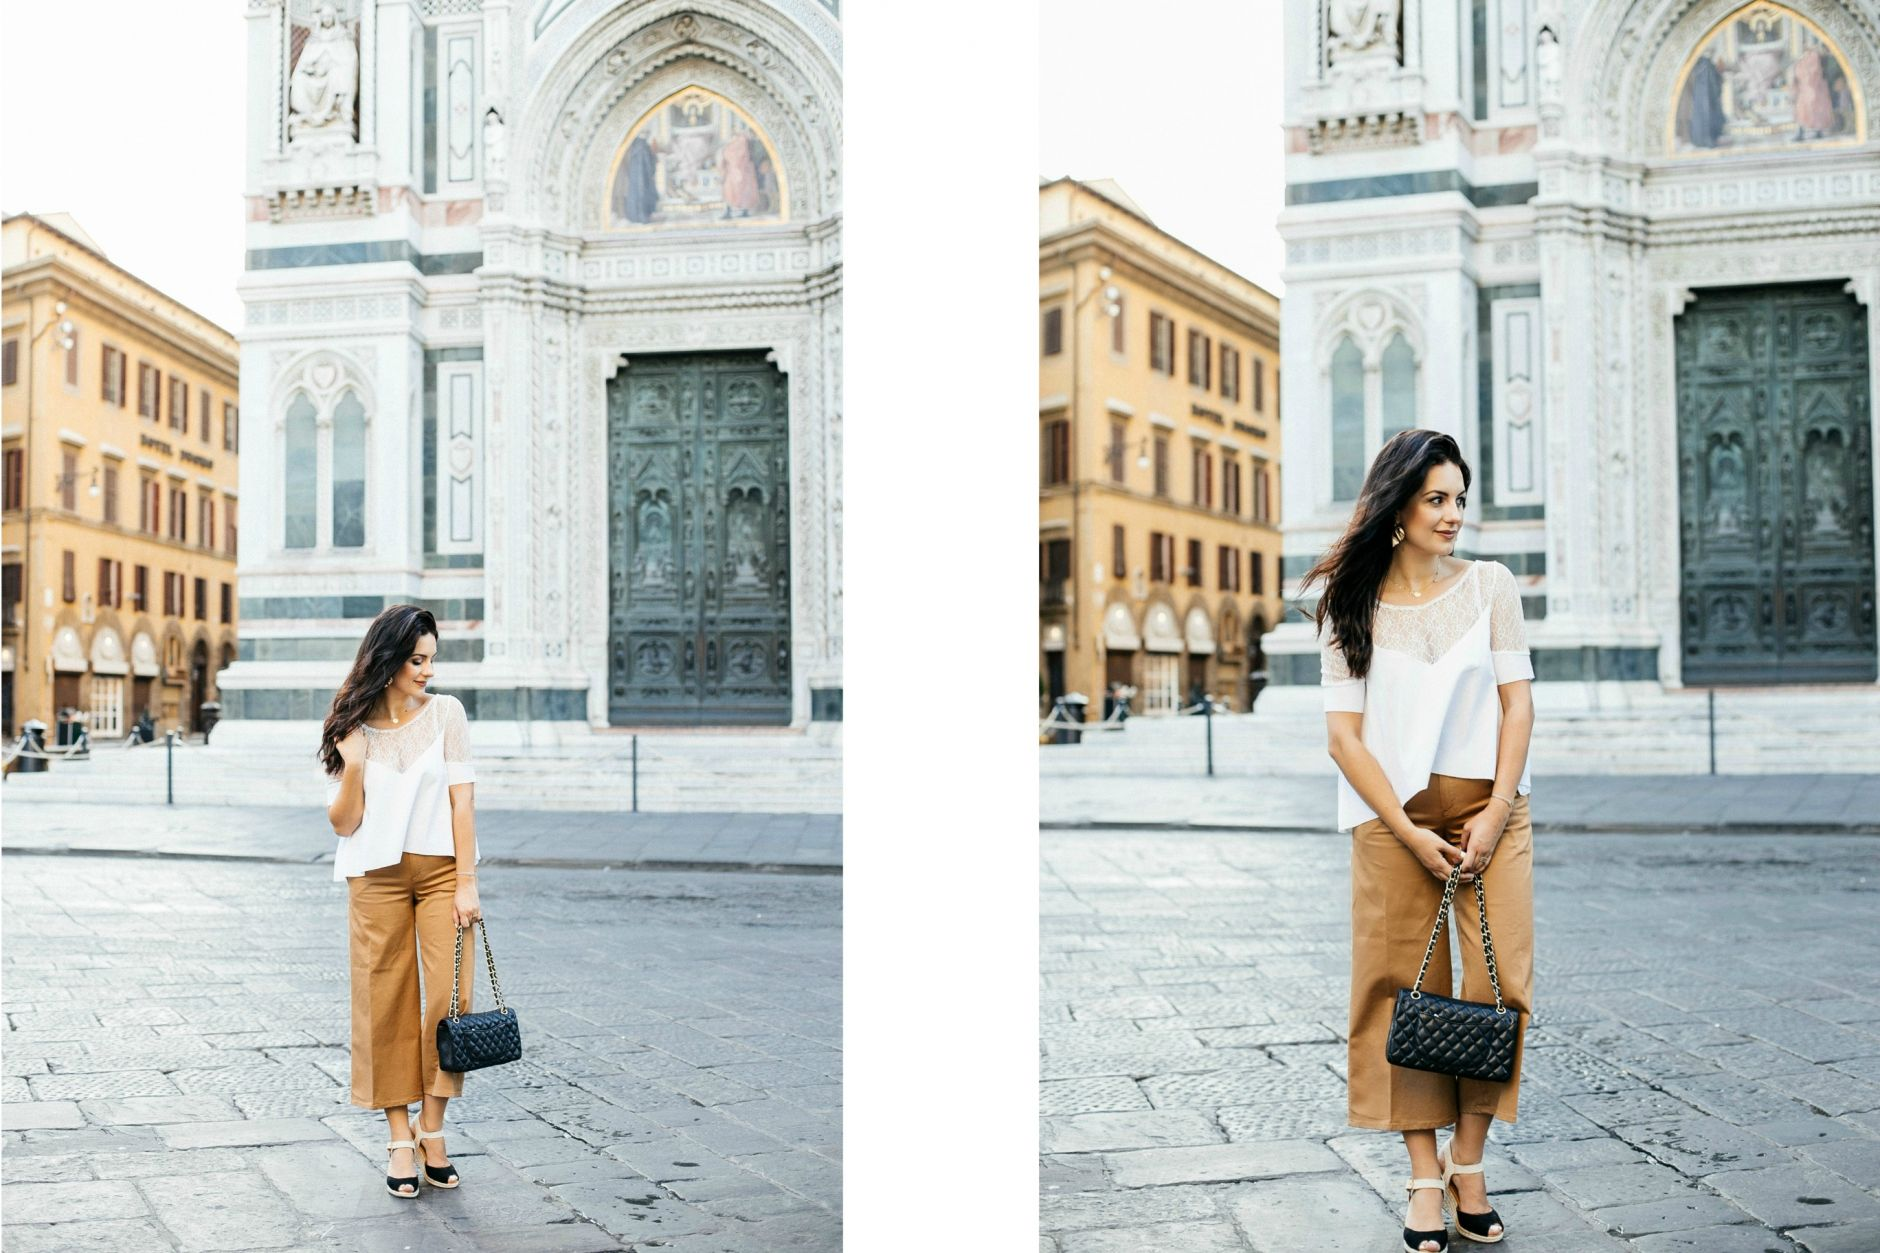 Firenze-Italia-Italy-Florence-Cathedral-Disi-Couture-103